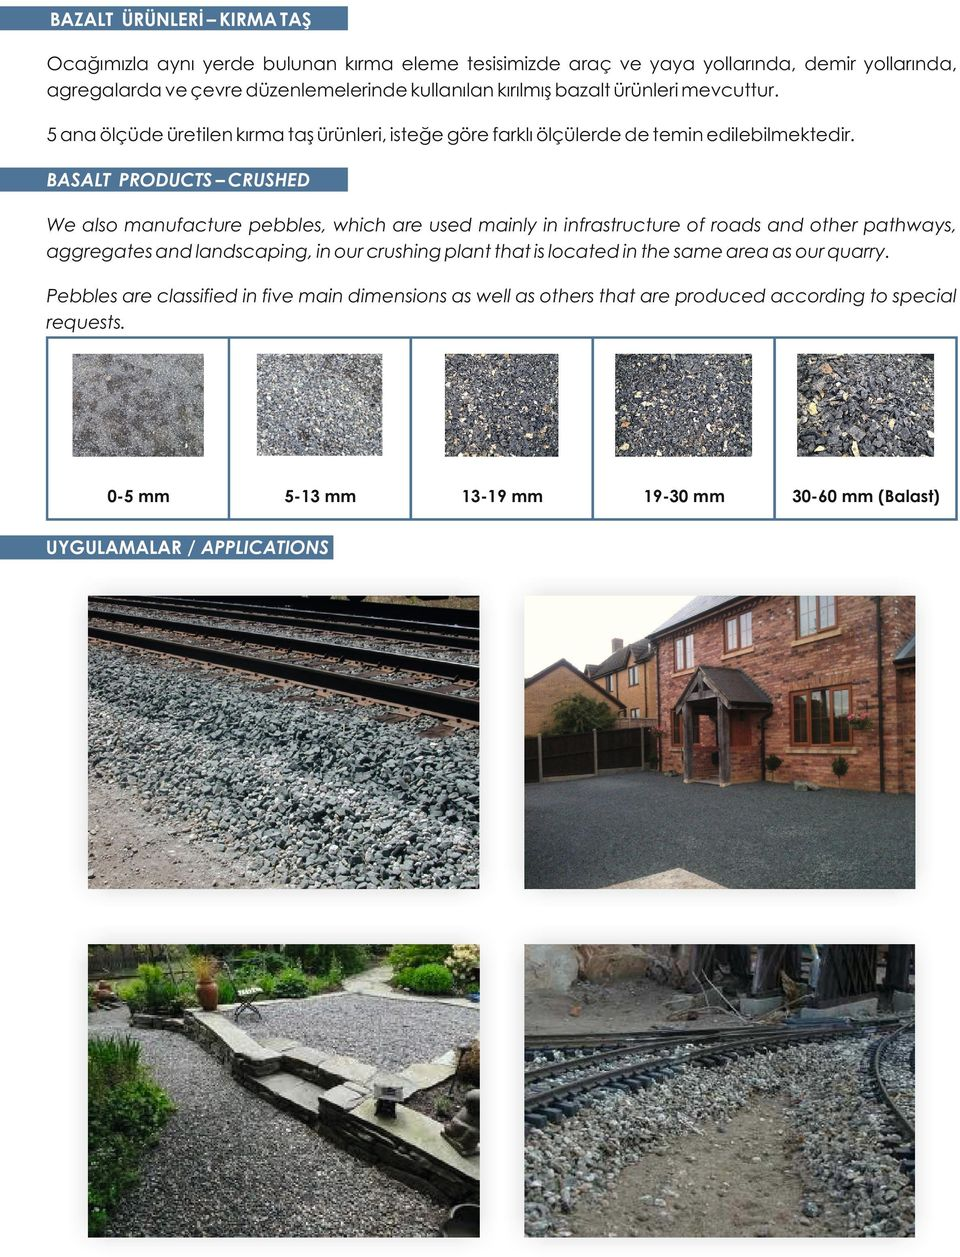 BASALT PRODUCTS CRUSHED We also manufacture pebbles, which are used mainly in infrastructure of roads and other pathways, aggregates and landscaping, in our crushing plant that is